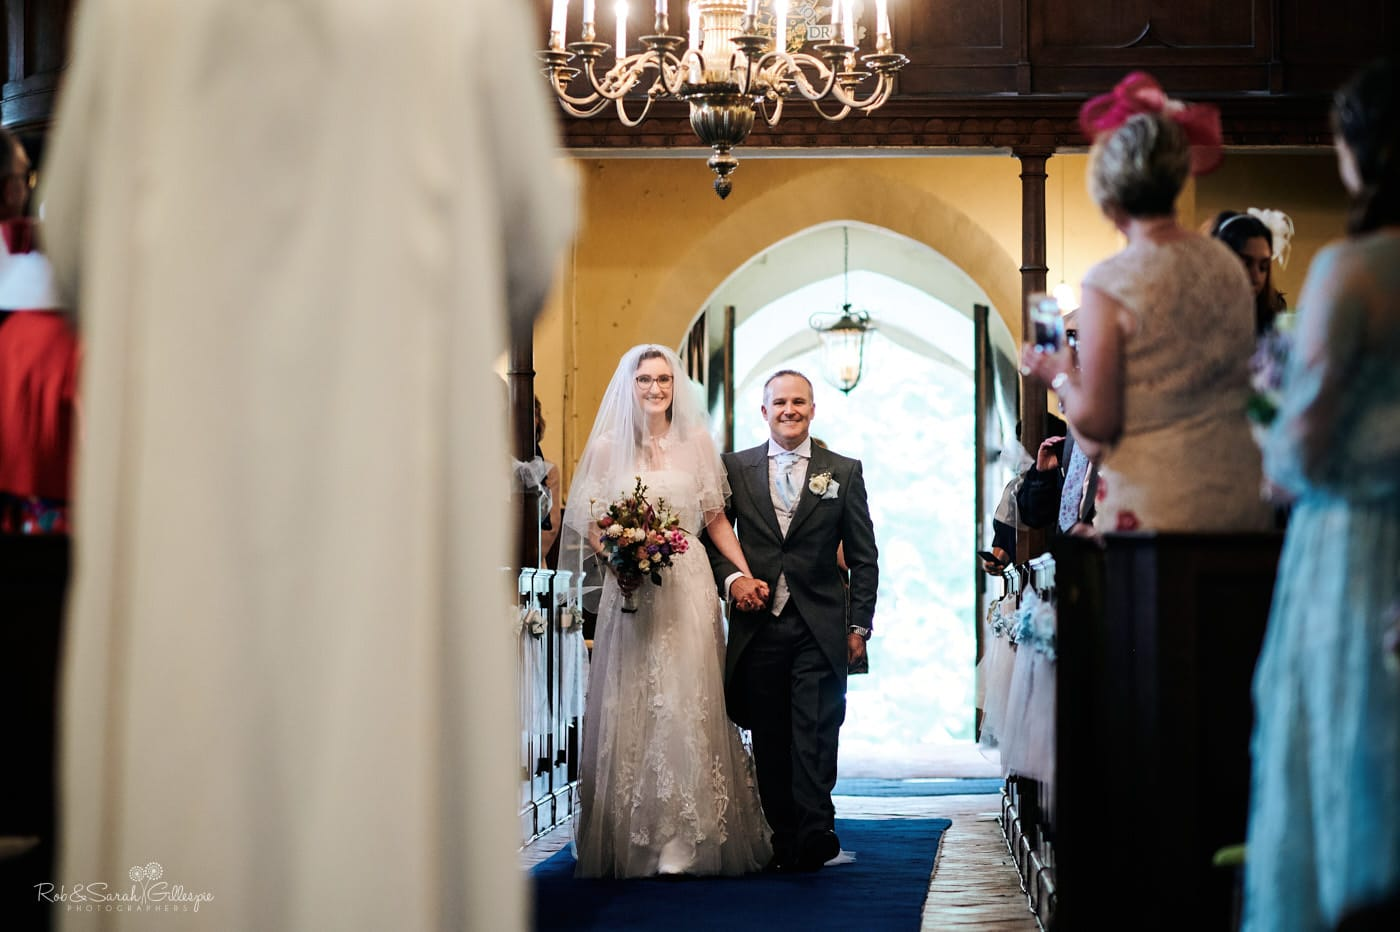 Bride and walk up aisle for wedding ceremony